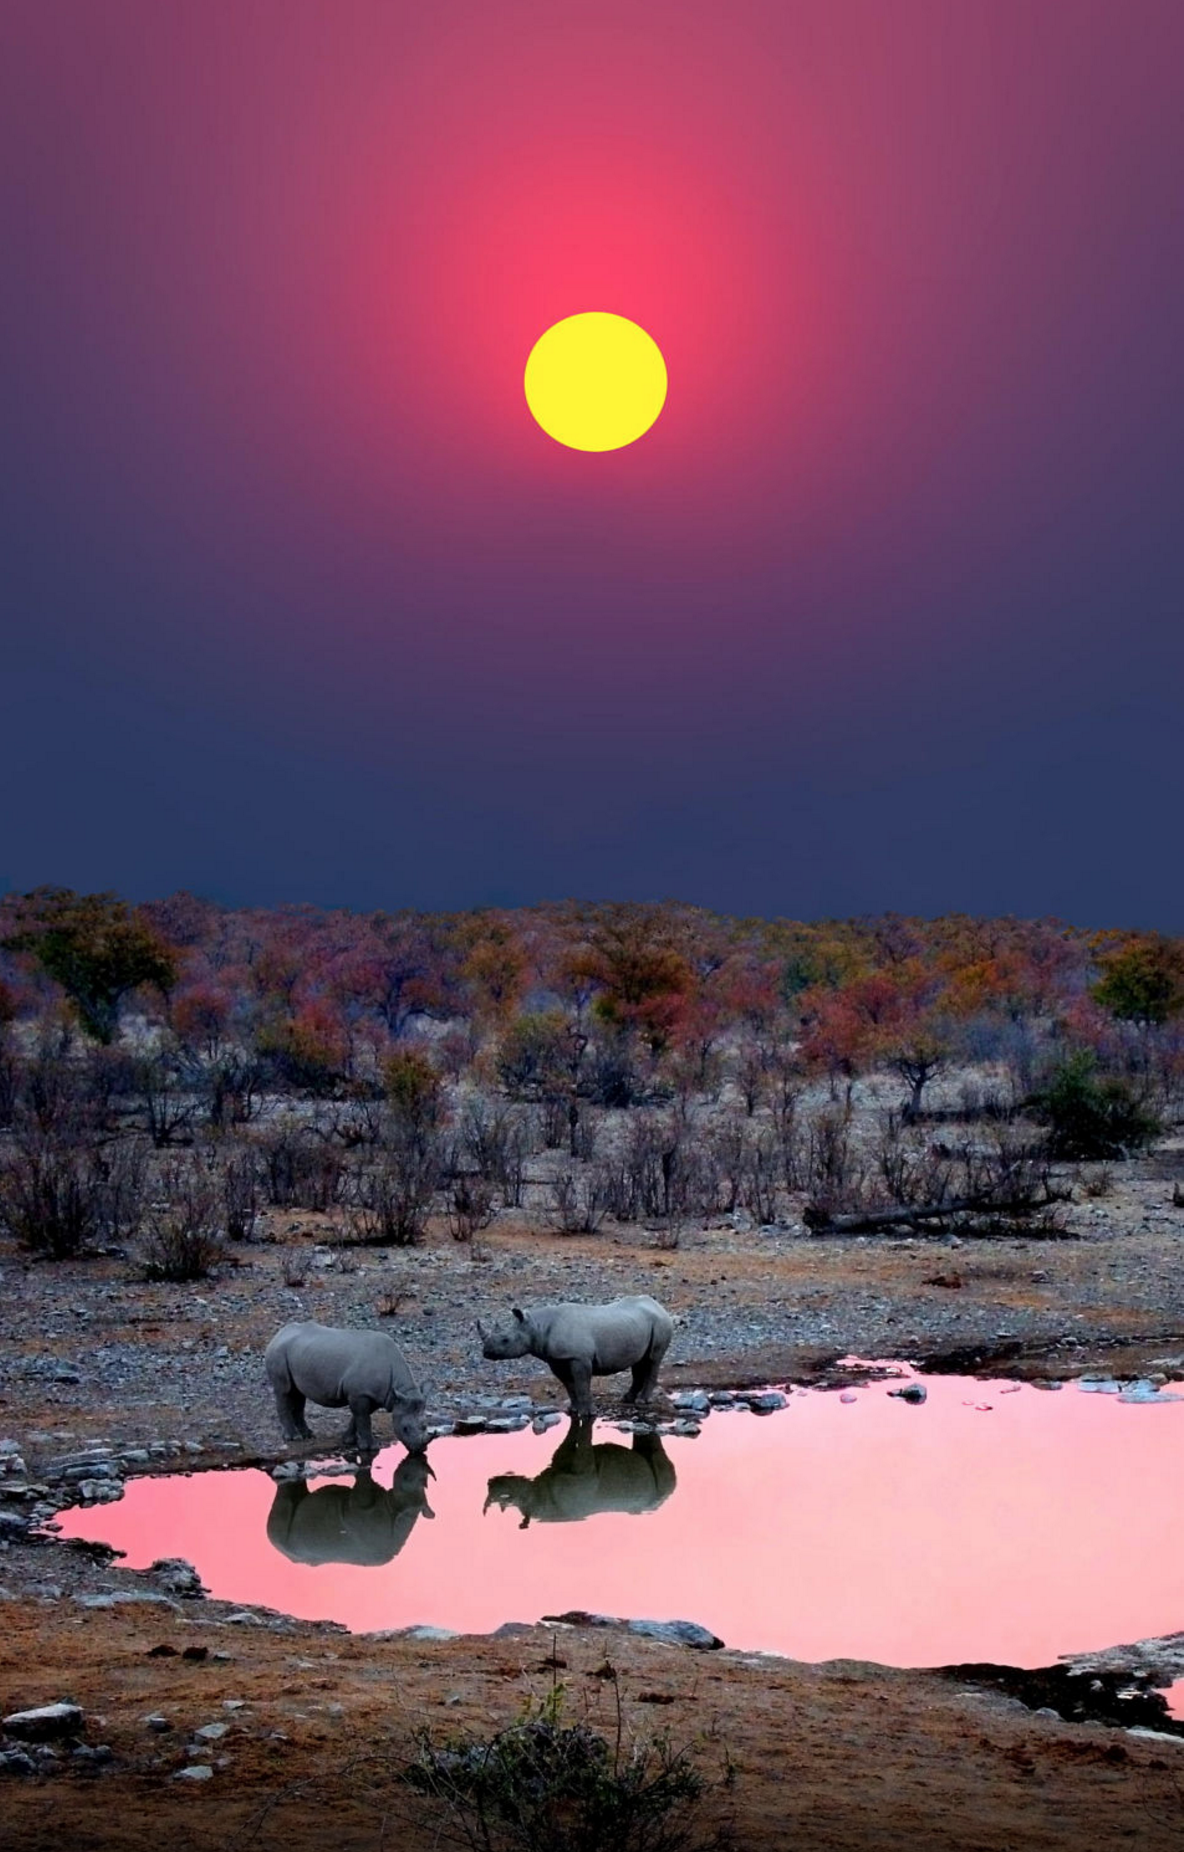 Black Rhinos at a waterhole – Etosha National Park, Namibia